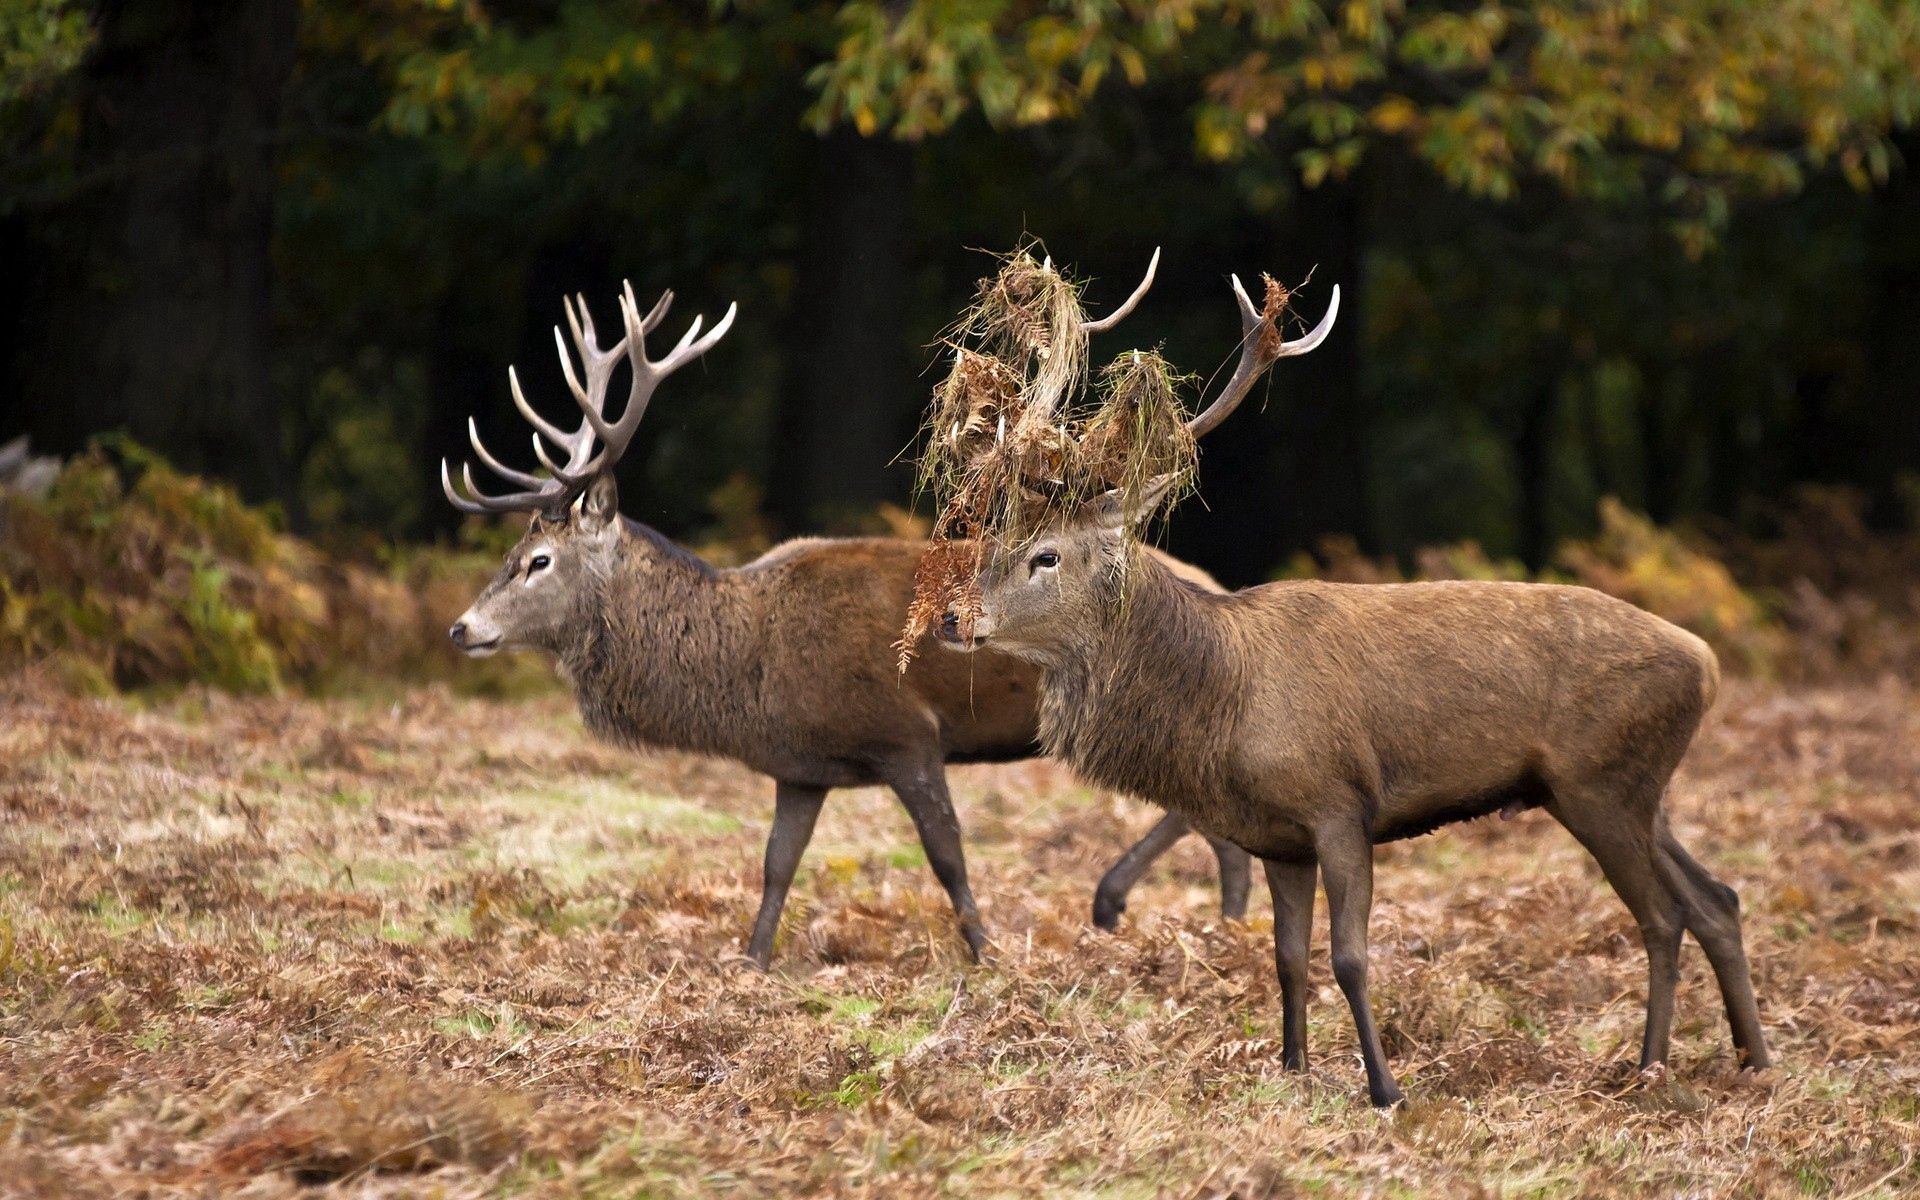 104798 download wallpaper Animals, Deers, Couple, Pair, Grass, Forest, Family screensavers and pictures for free